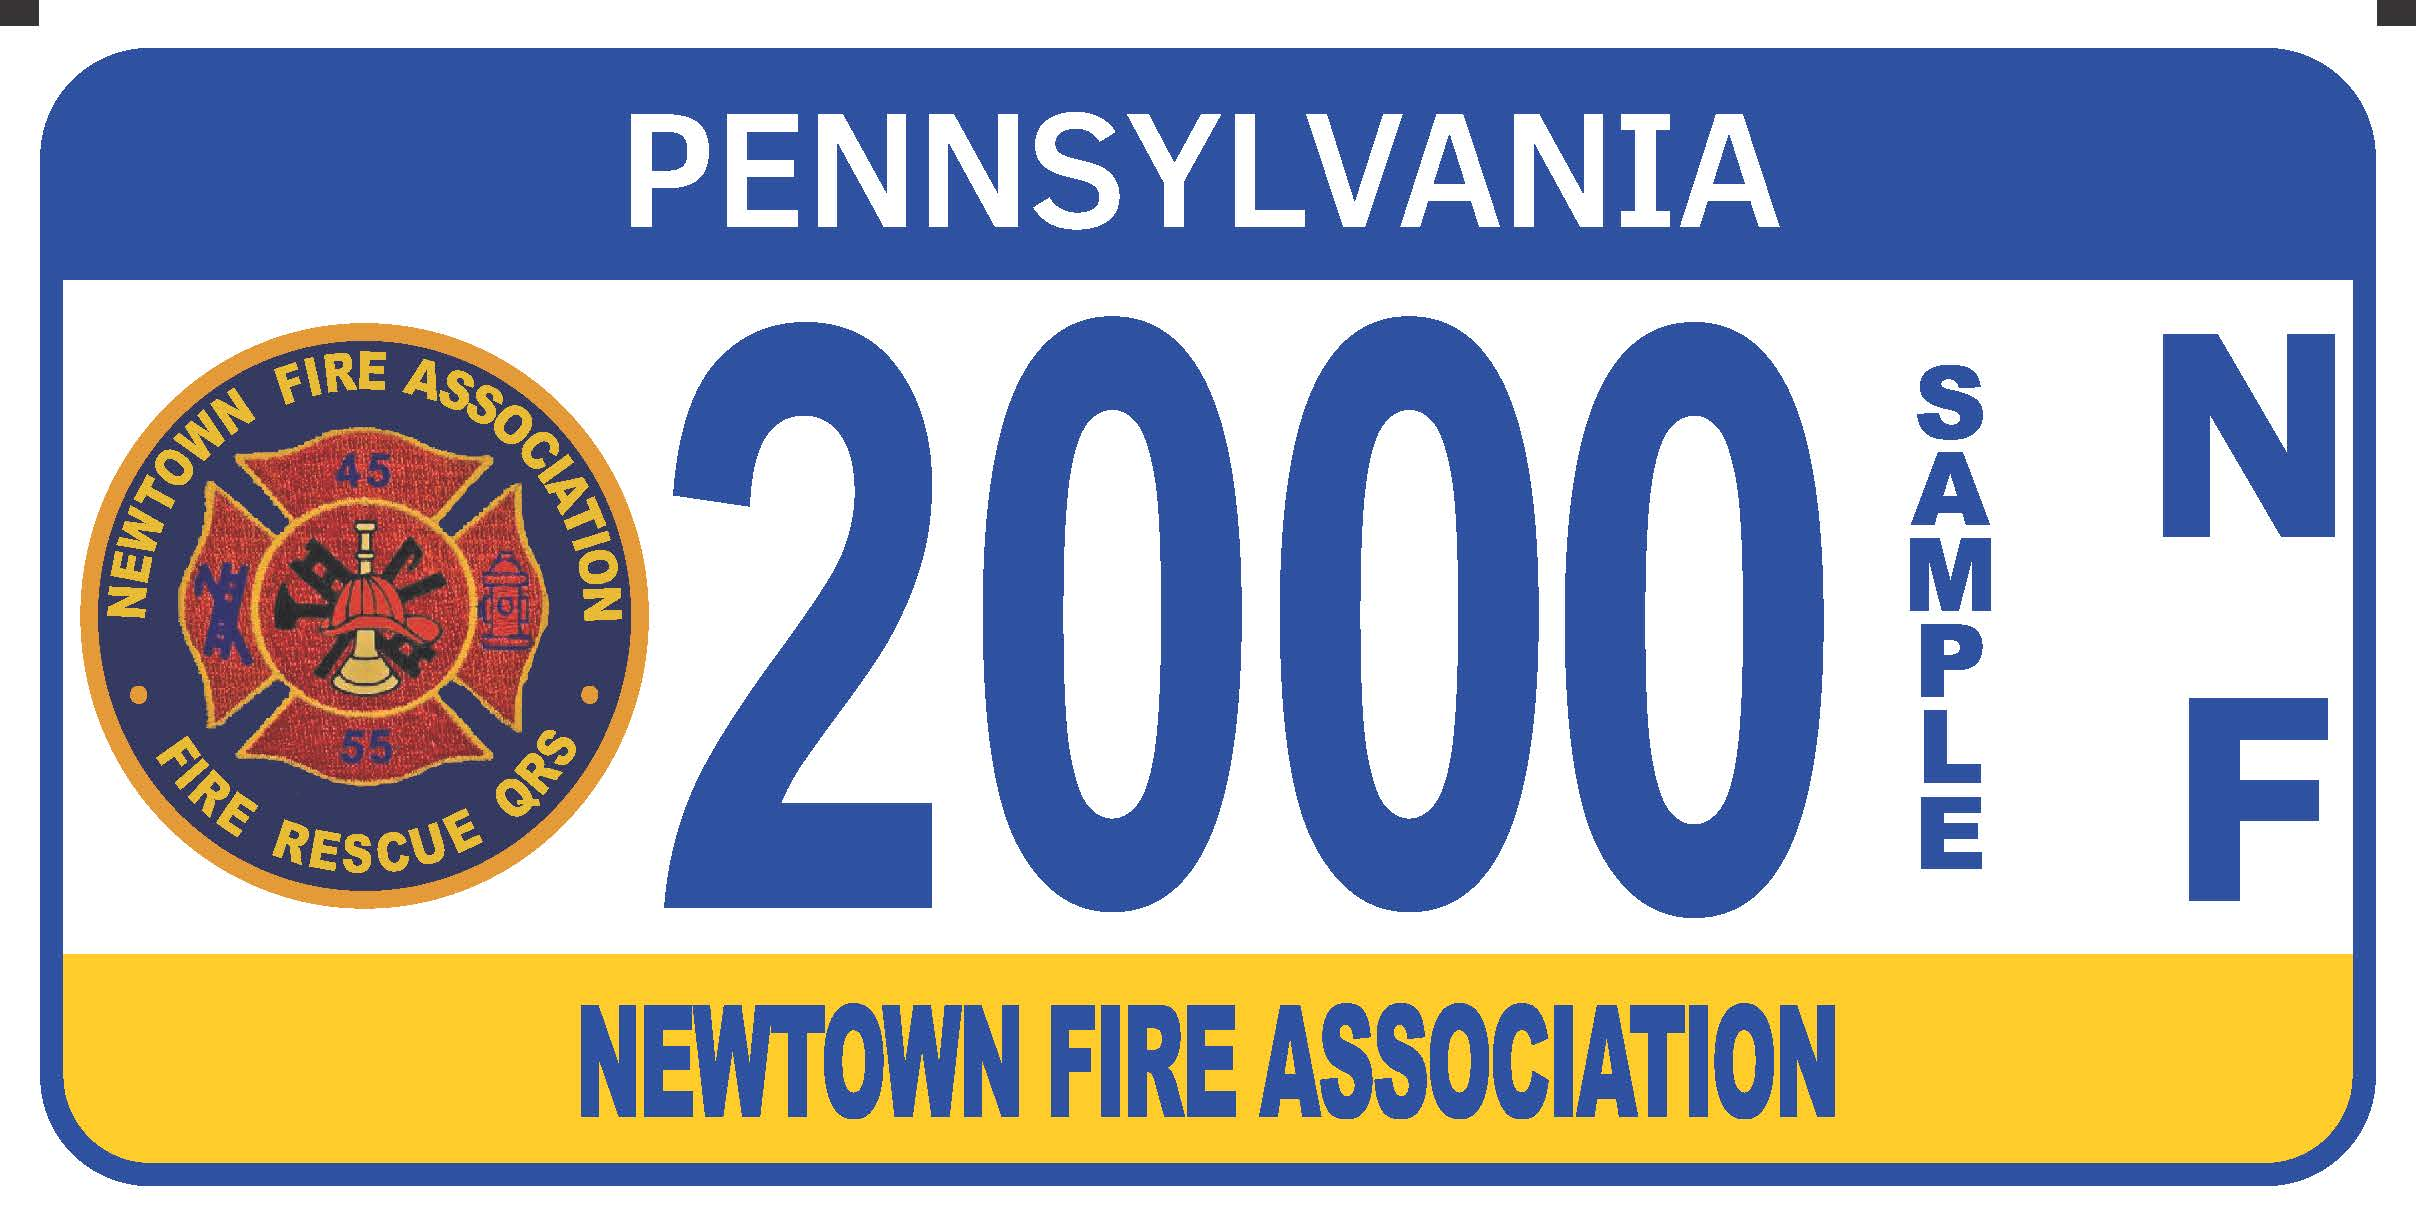 Newtown Fire Association